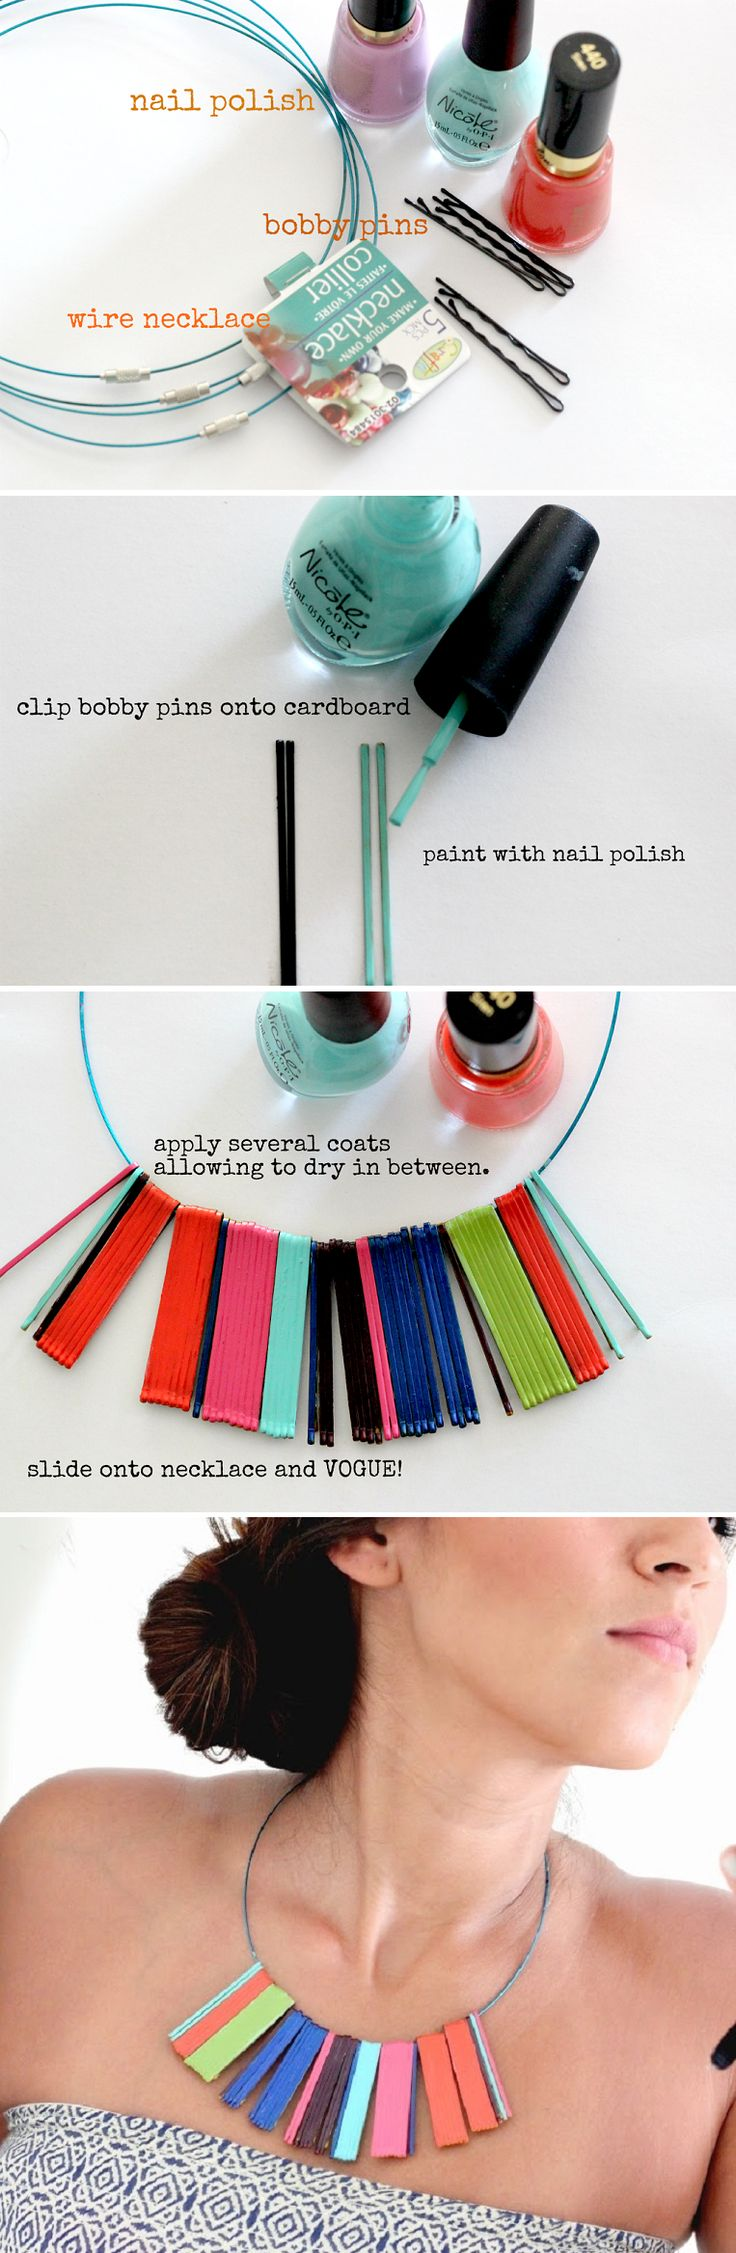 Easy Statement Necklace Tutorial - 16 Most Pinned DIY Nail Polish Crafts and Projects | GleamItUp